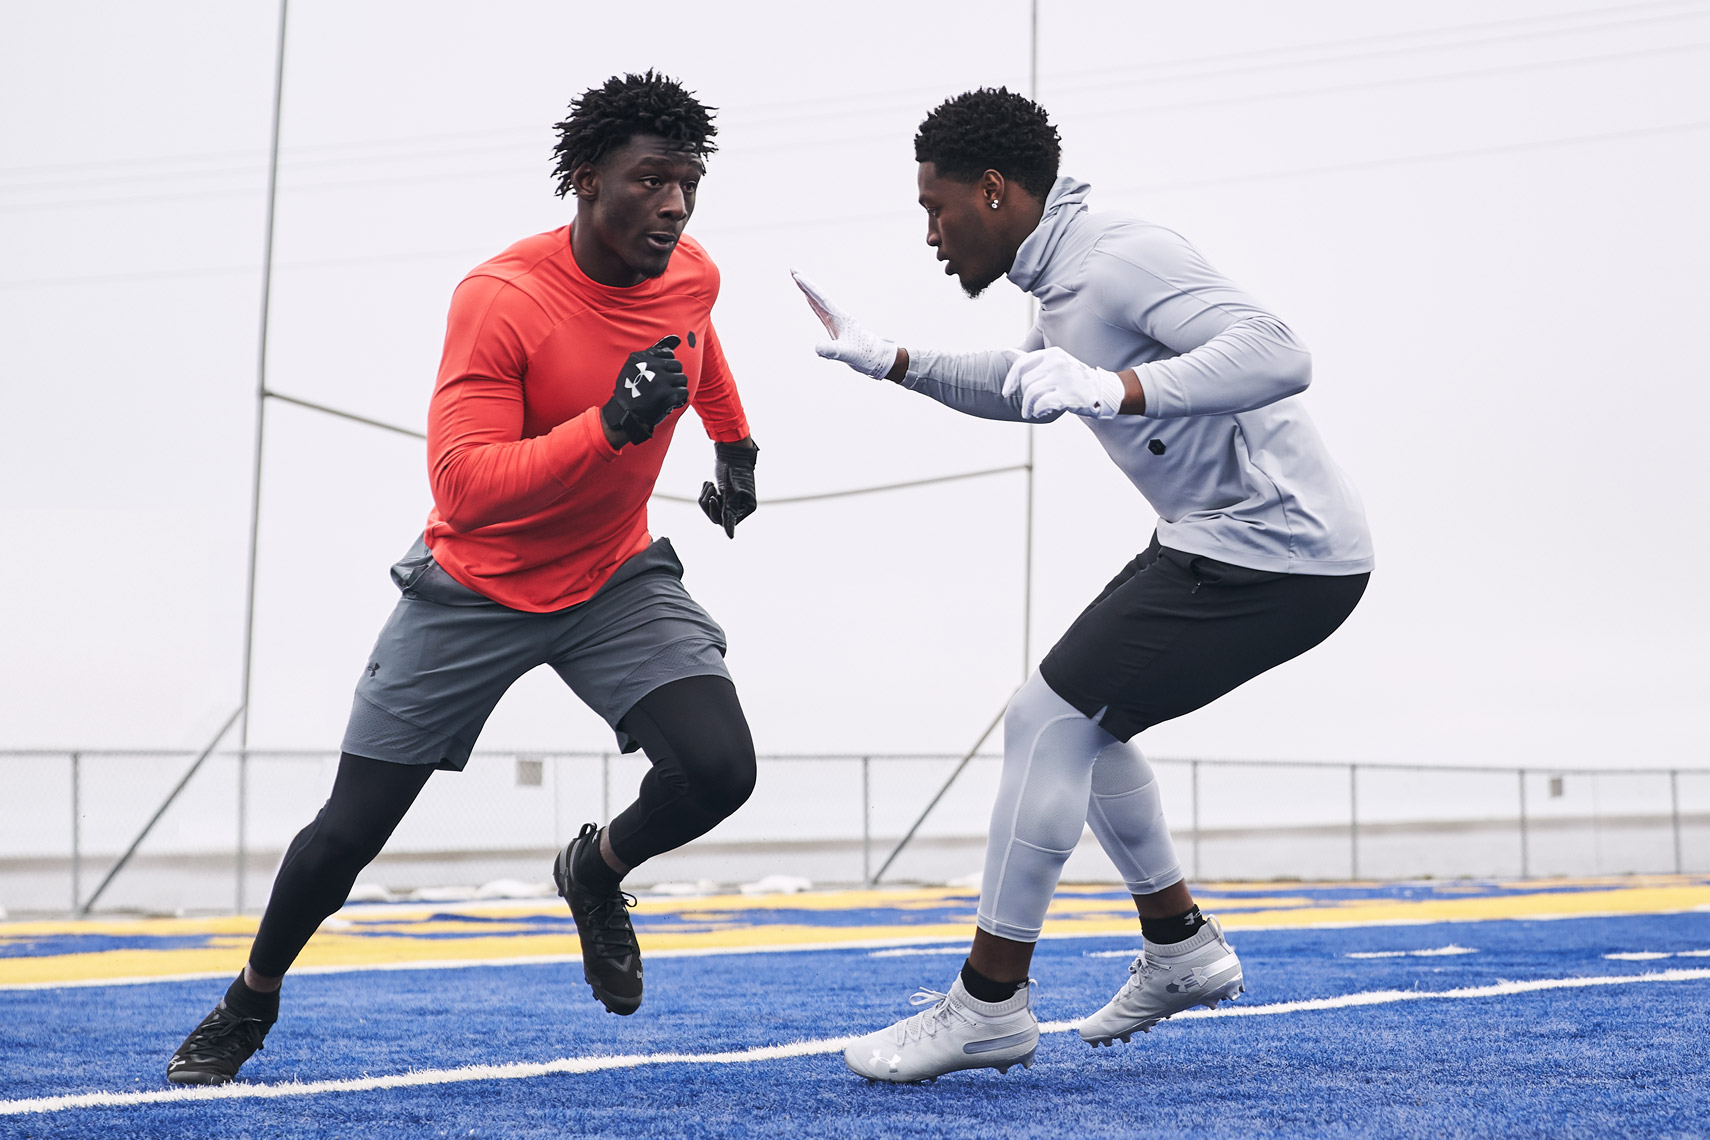 Darnell Savage & Riley Ridley - Under Armour